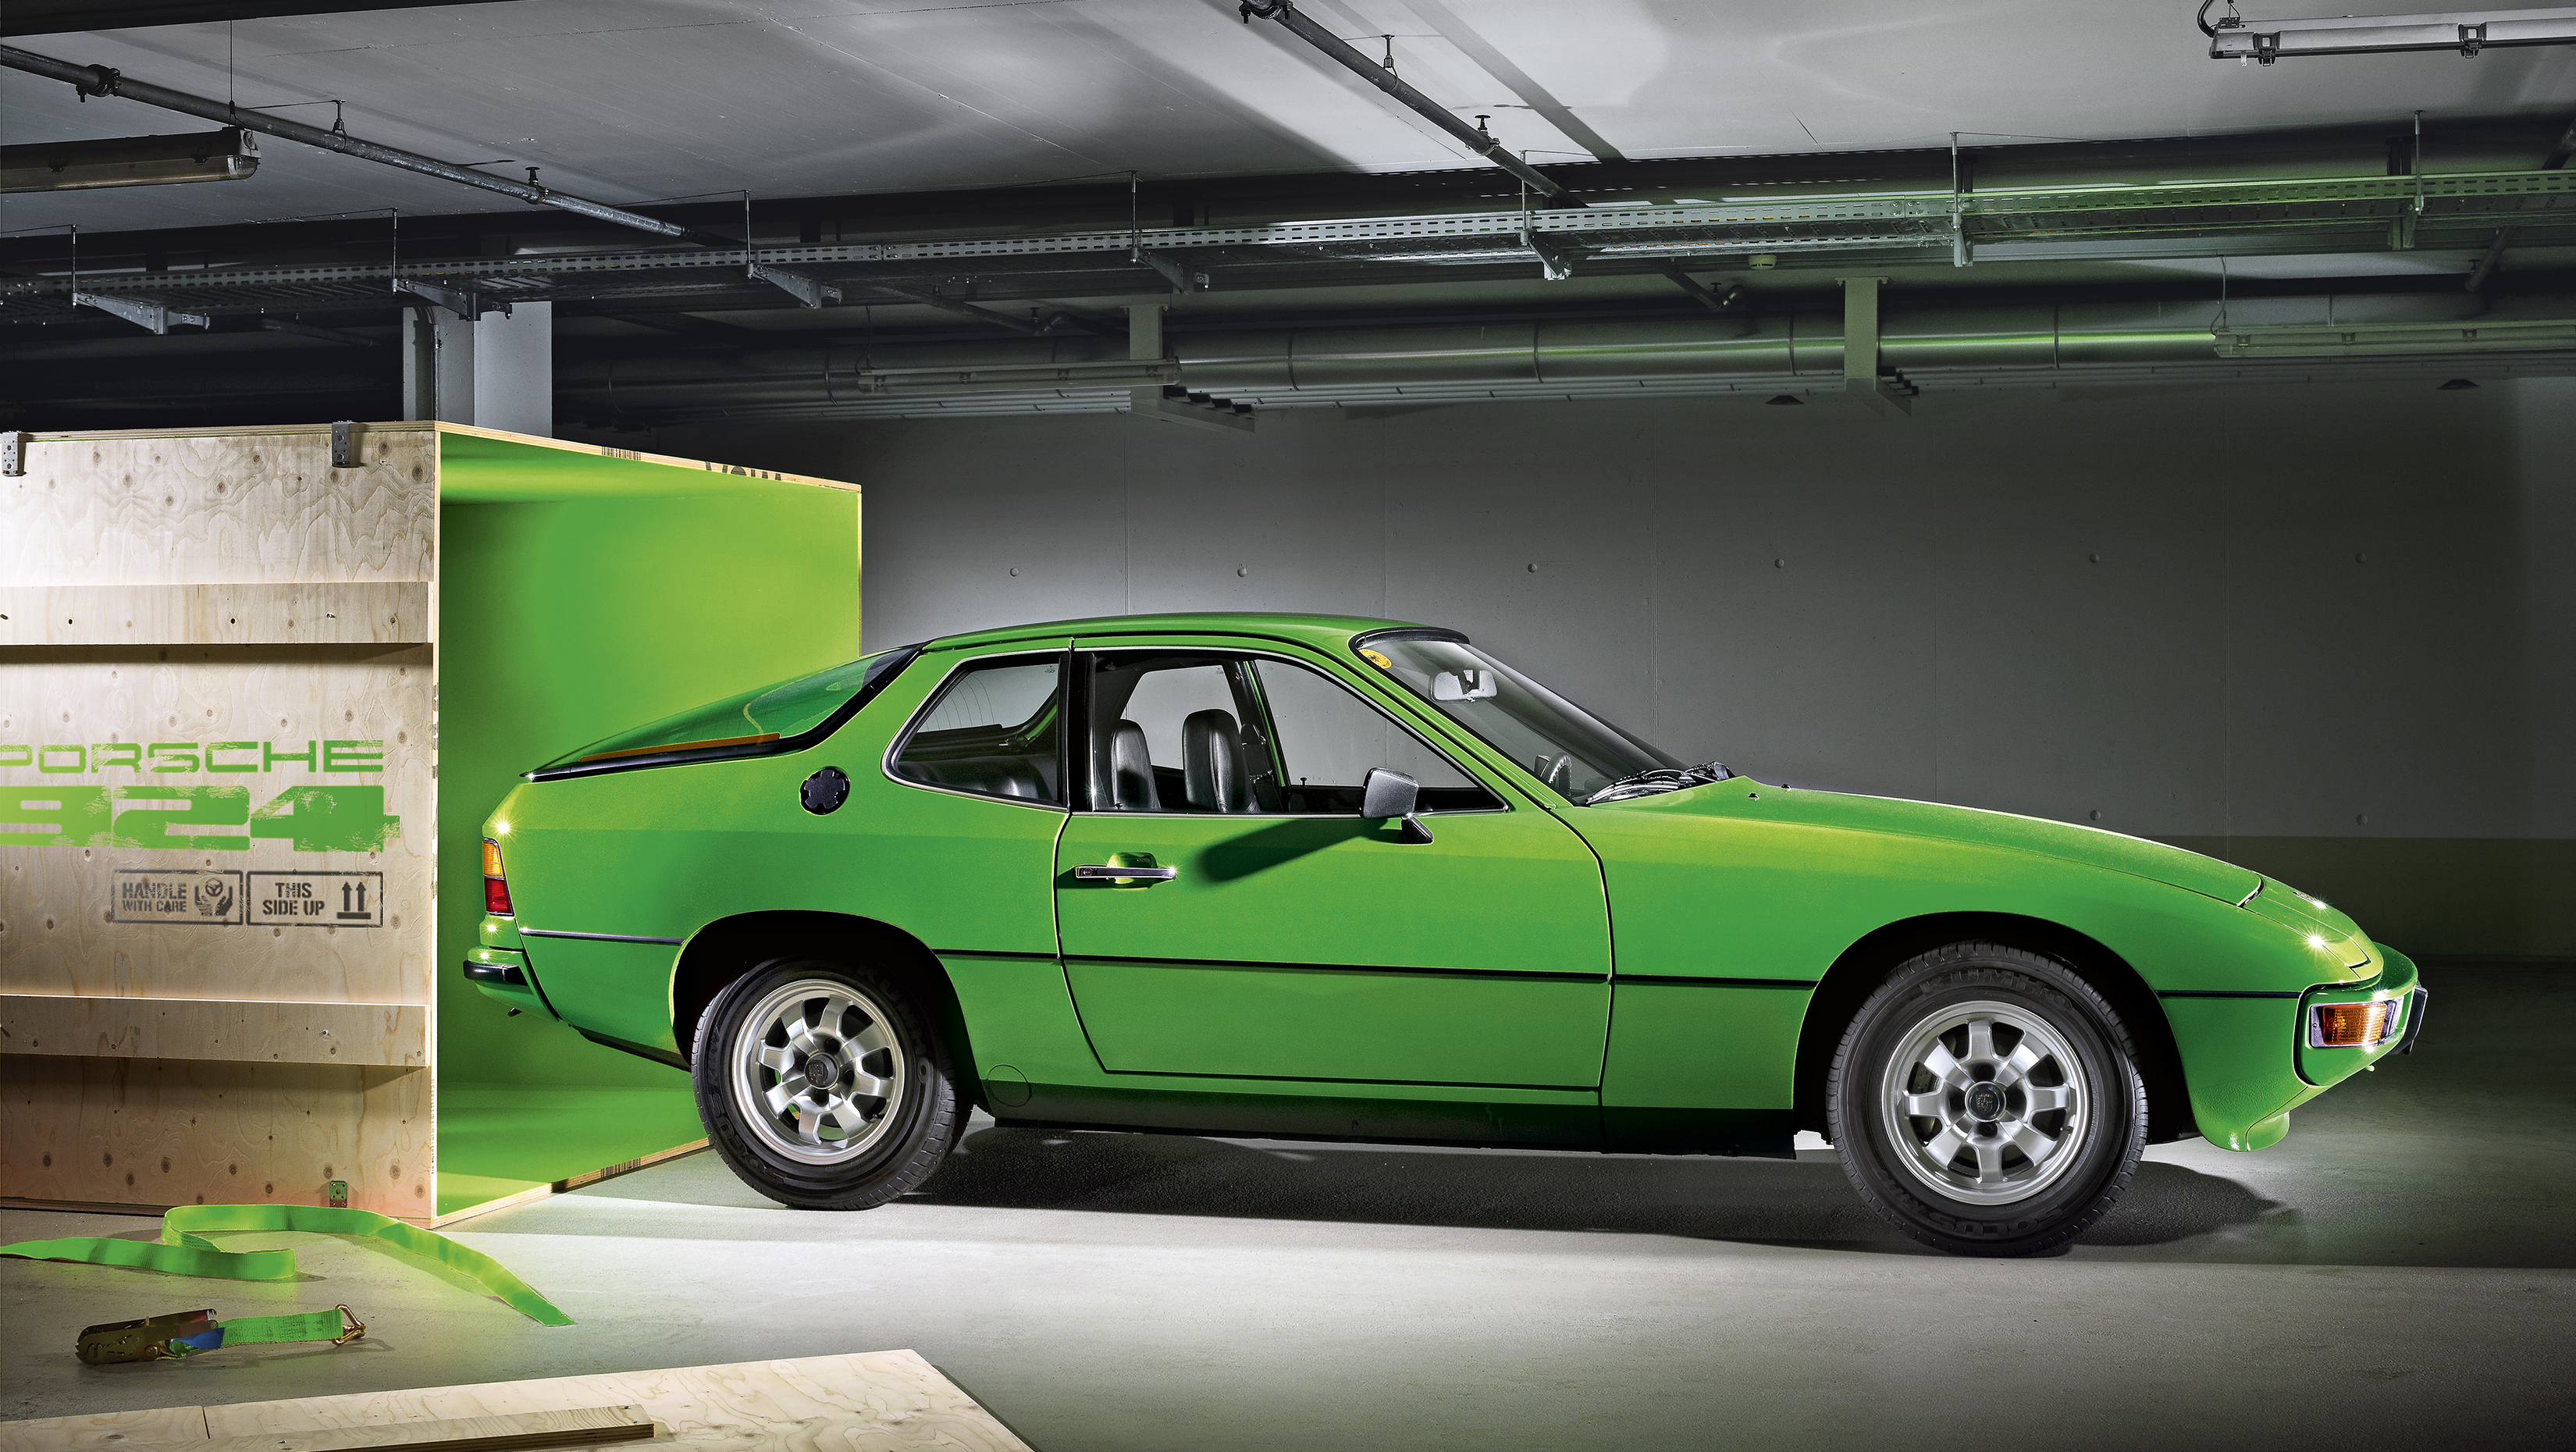 The 924